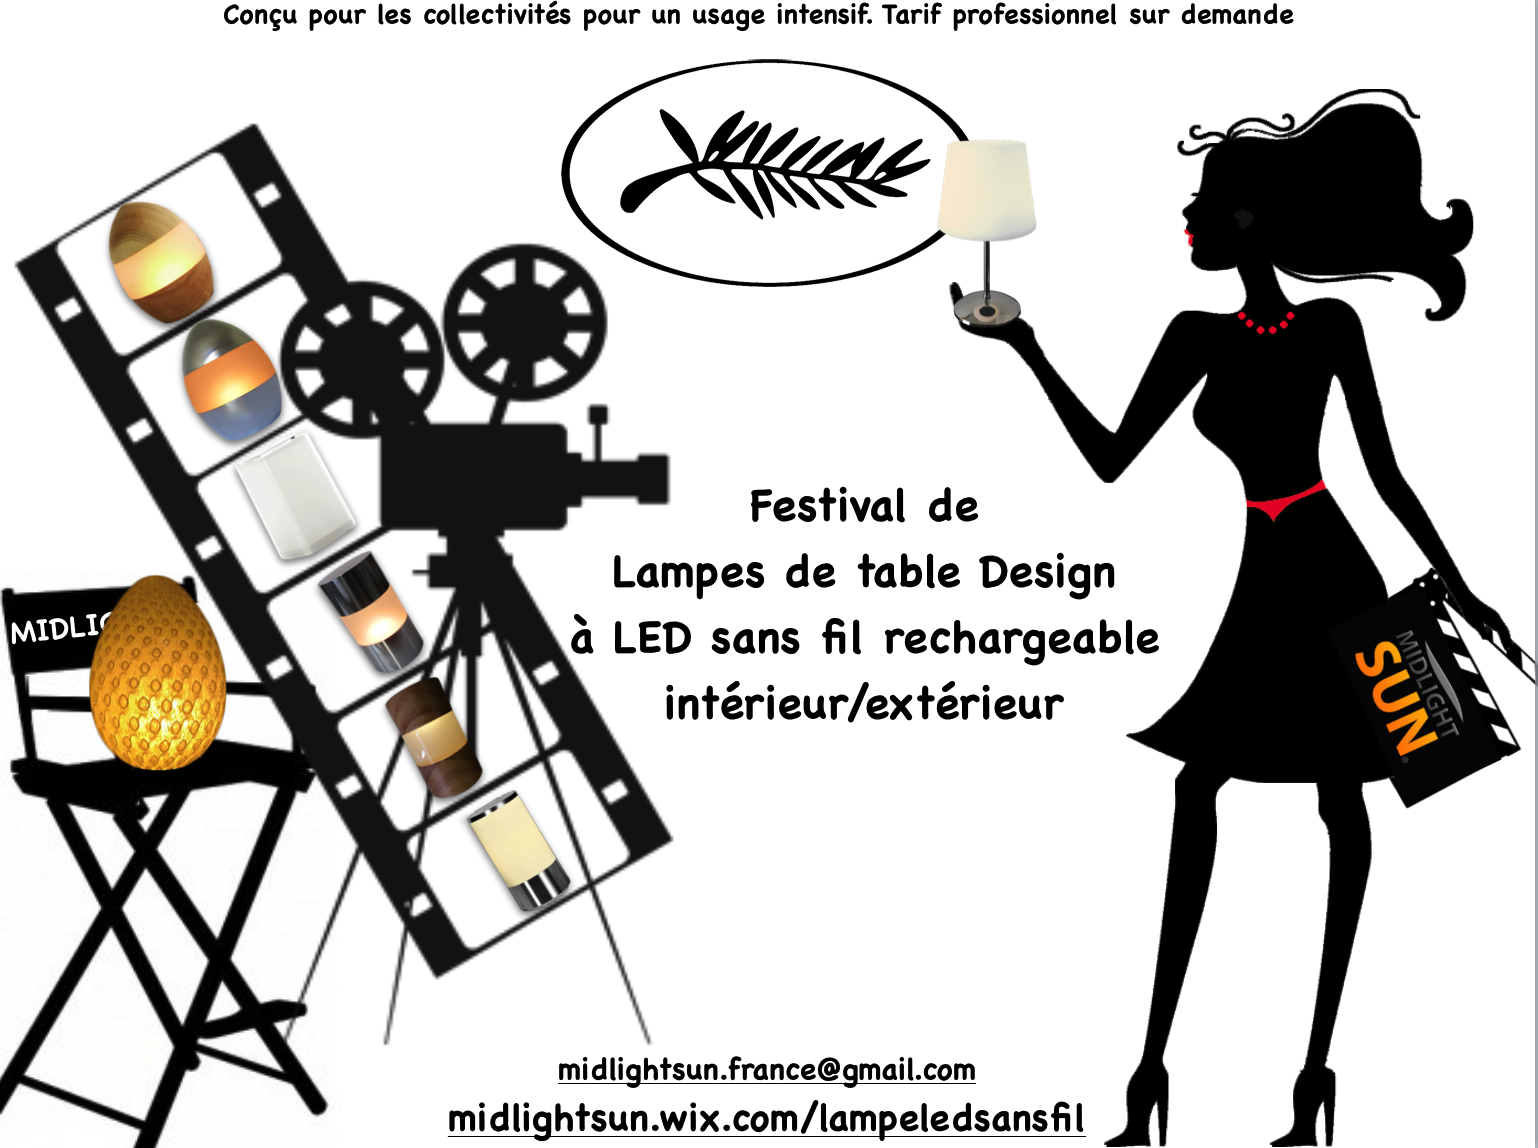 Lampe De Table Exterieur Rechargeable Festival De Lampes De Table Design Sans Fil Led